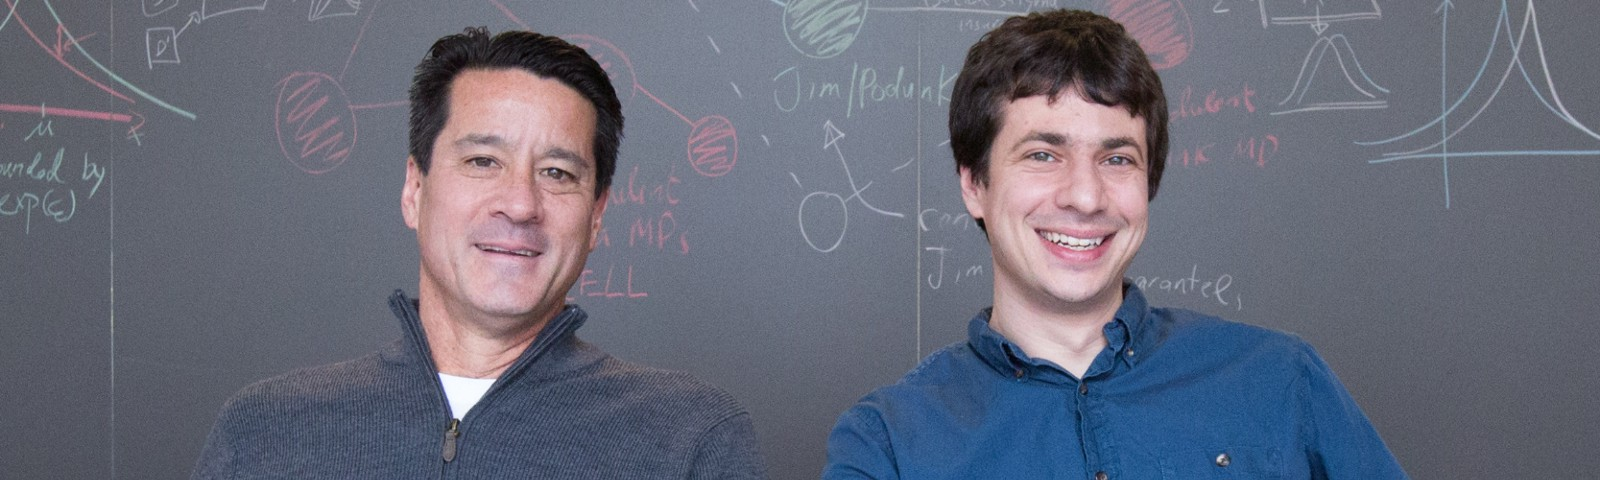 Michael Kearns and Aaron Roth sit in front of a chalkboard.